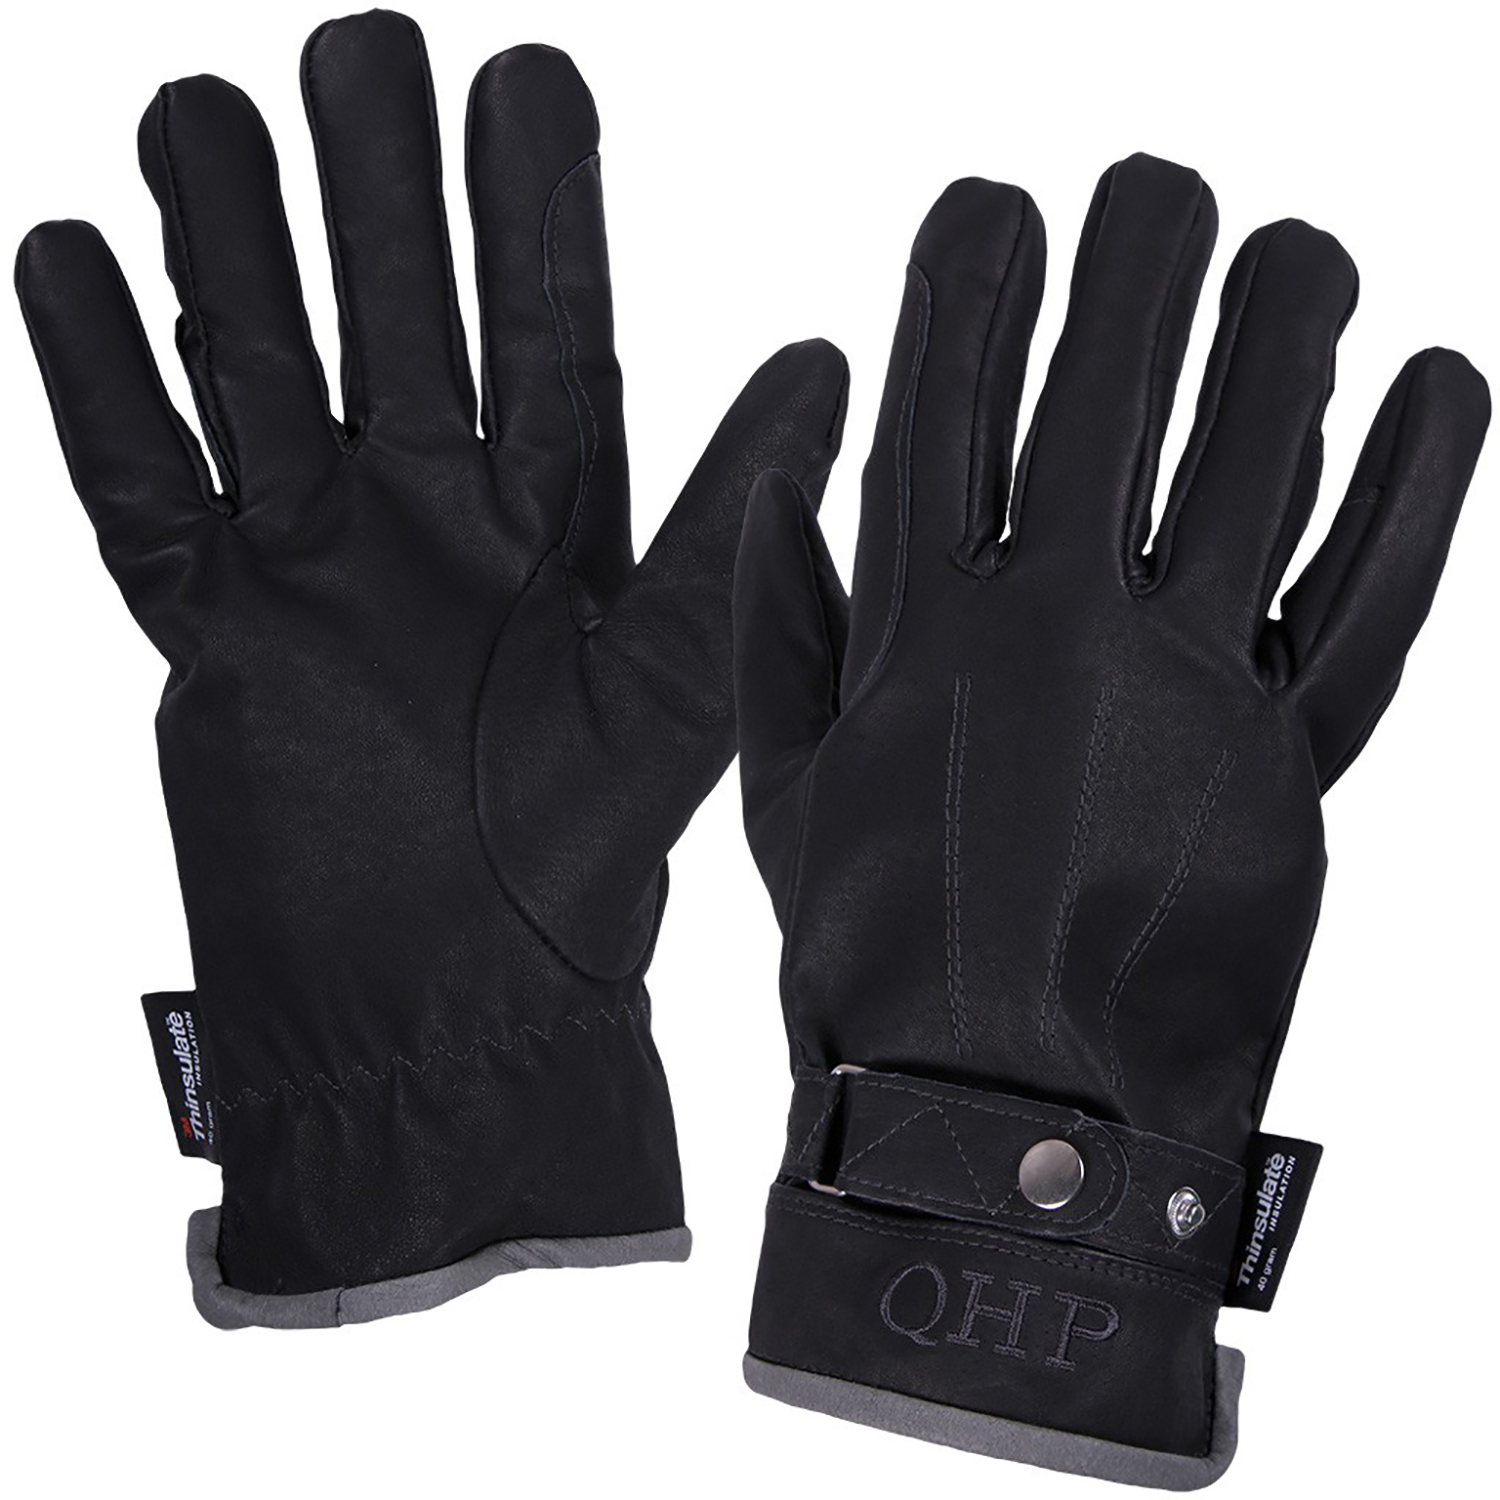 QHP MULTI ADULTS GLOVES